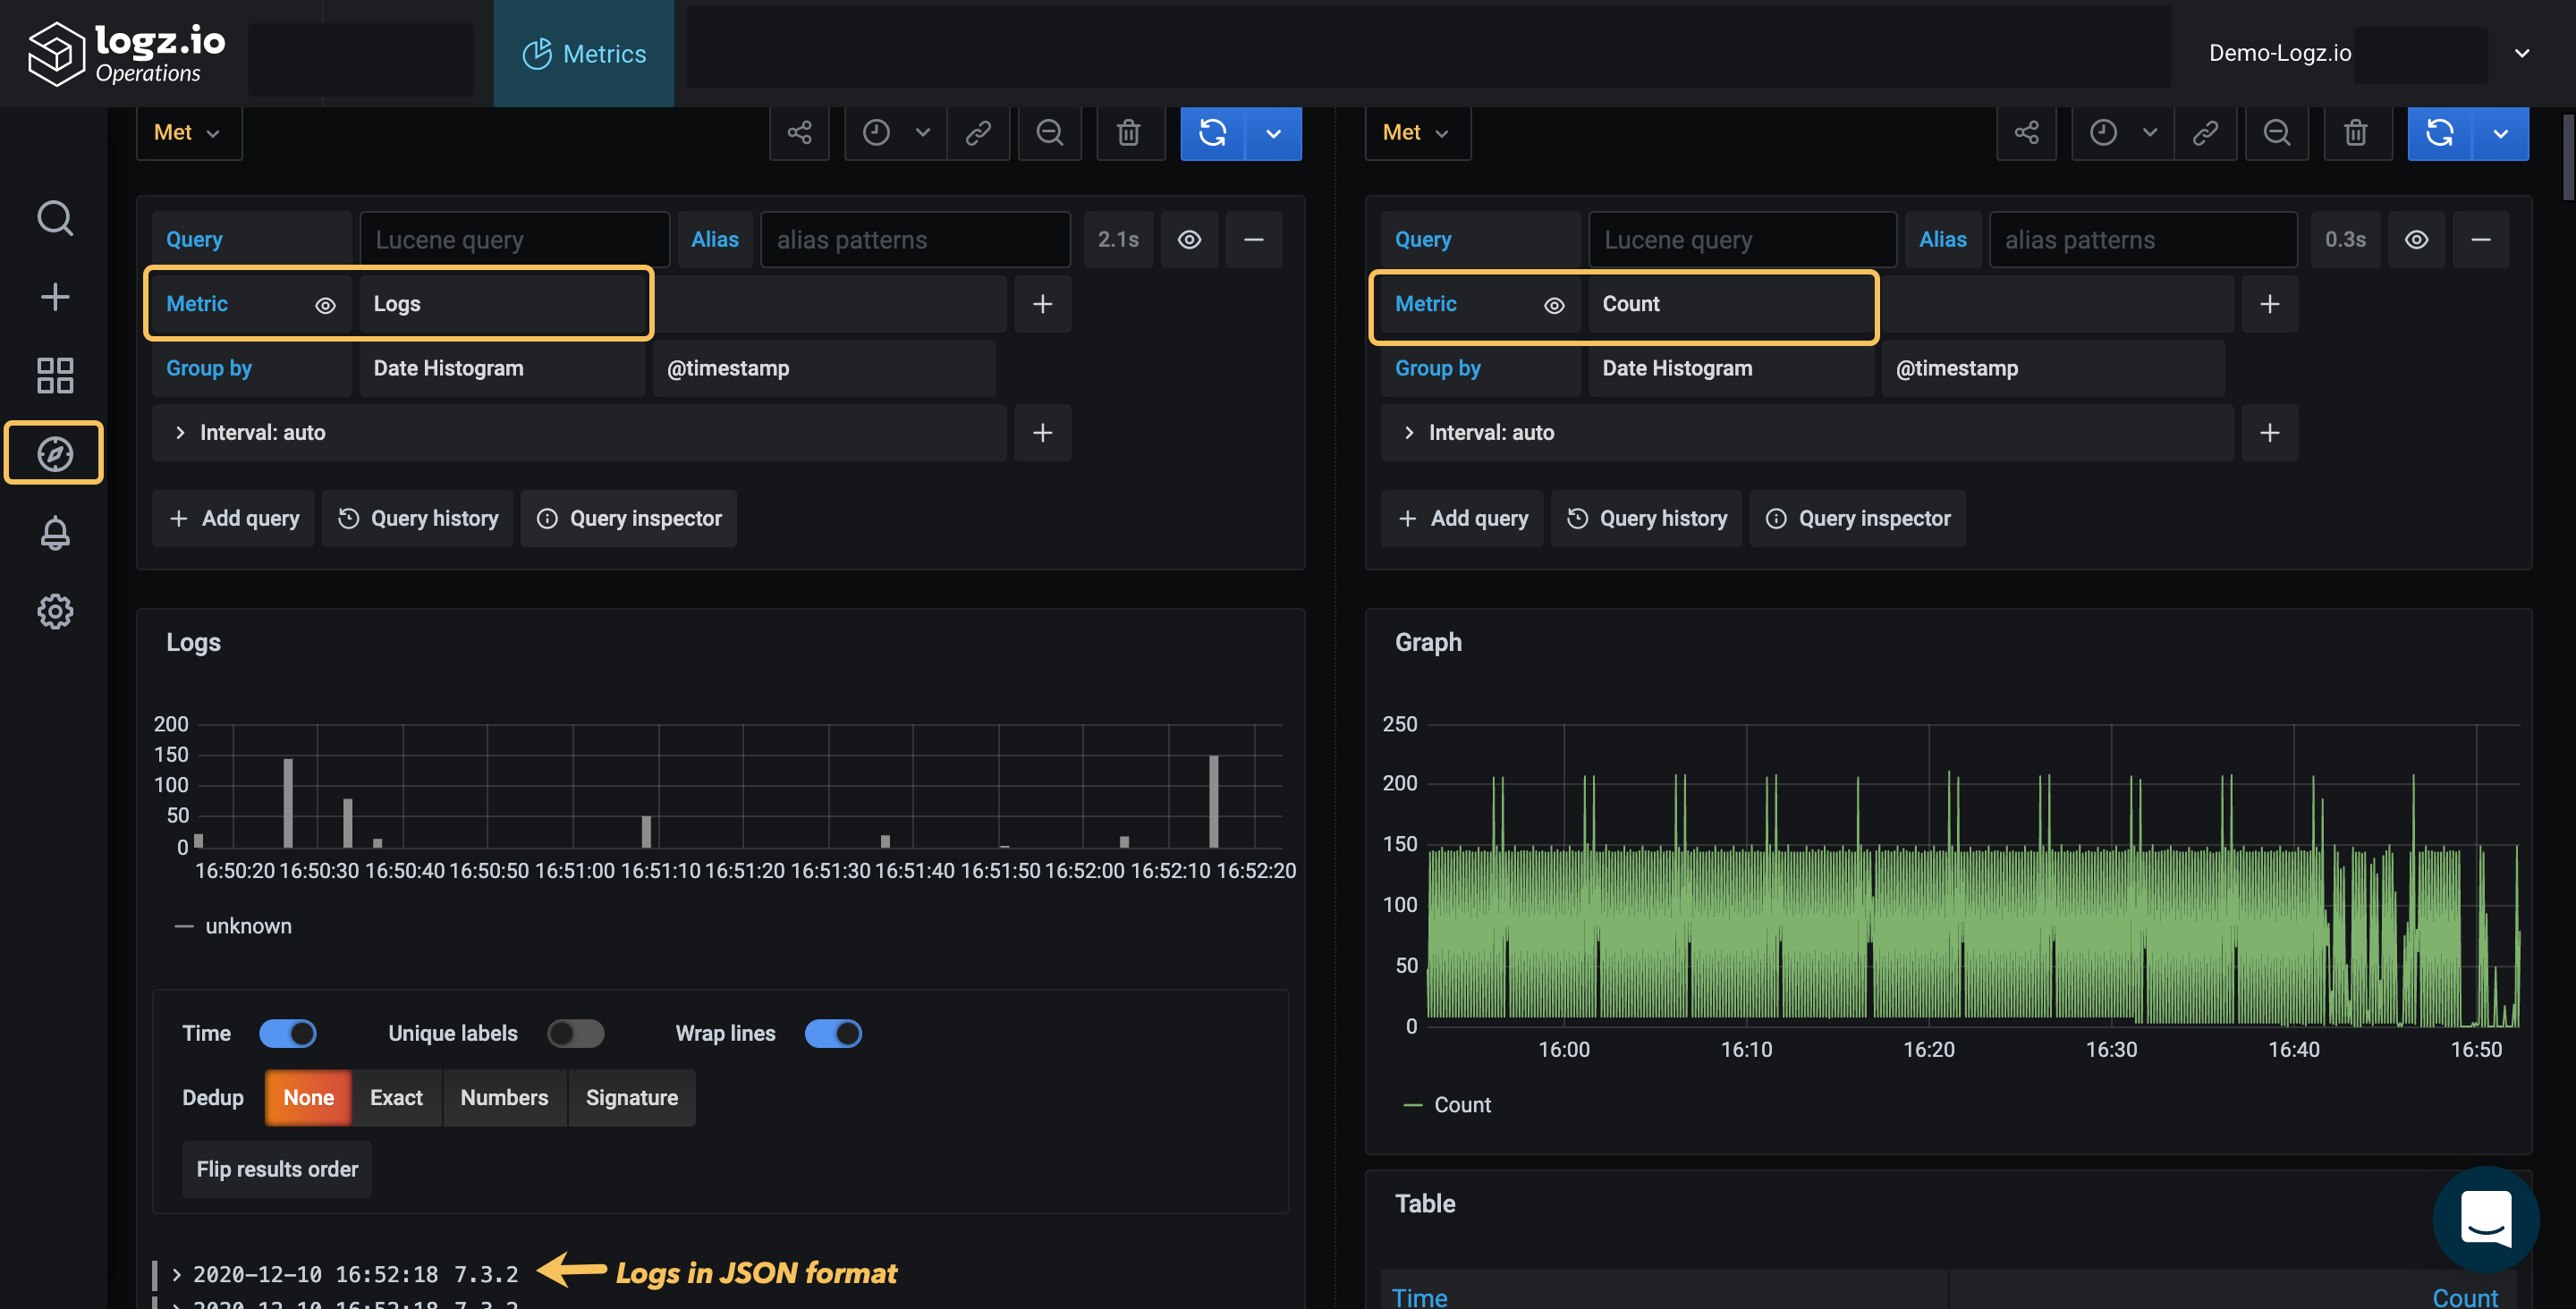 Grafana Explore with Metrics and Logs views shown side-by-side